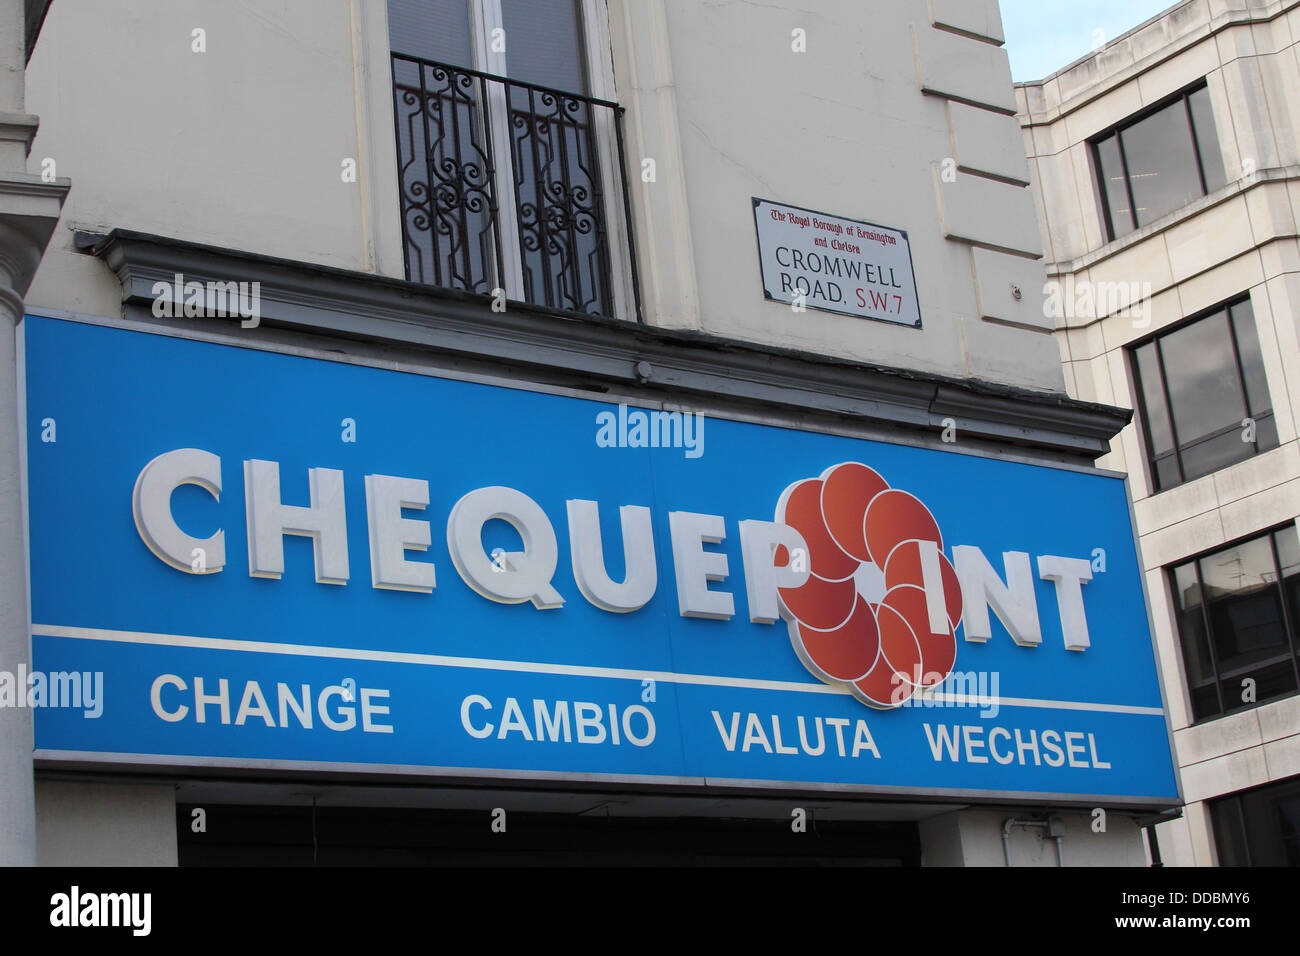 Chequepoint Storefront On Cromwell Road